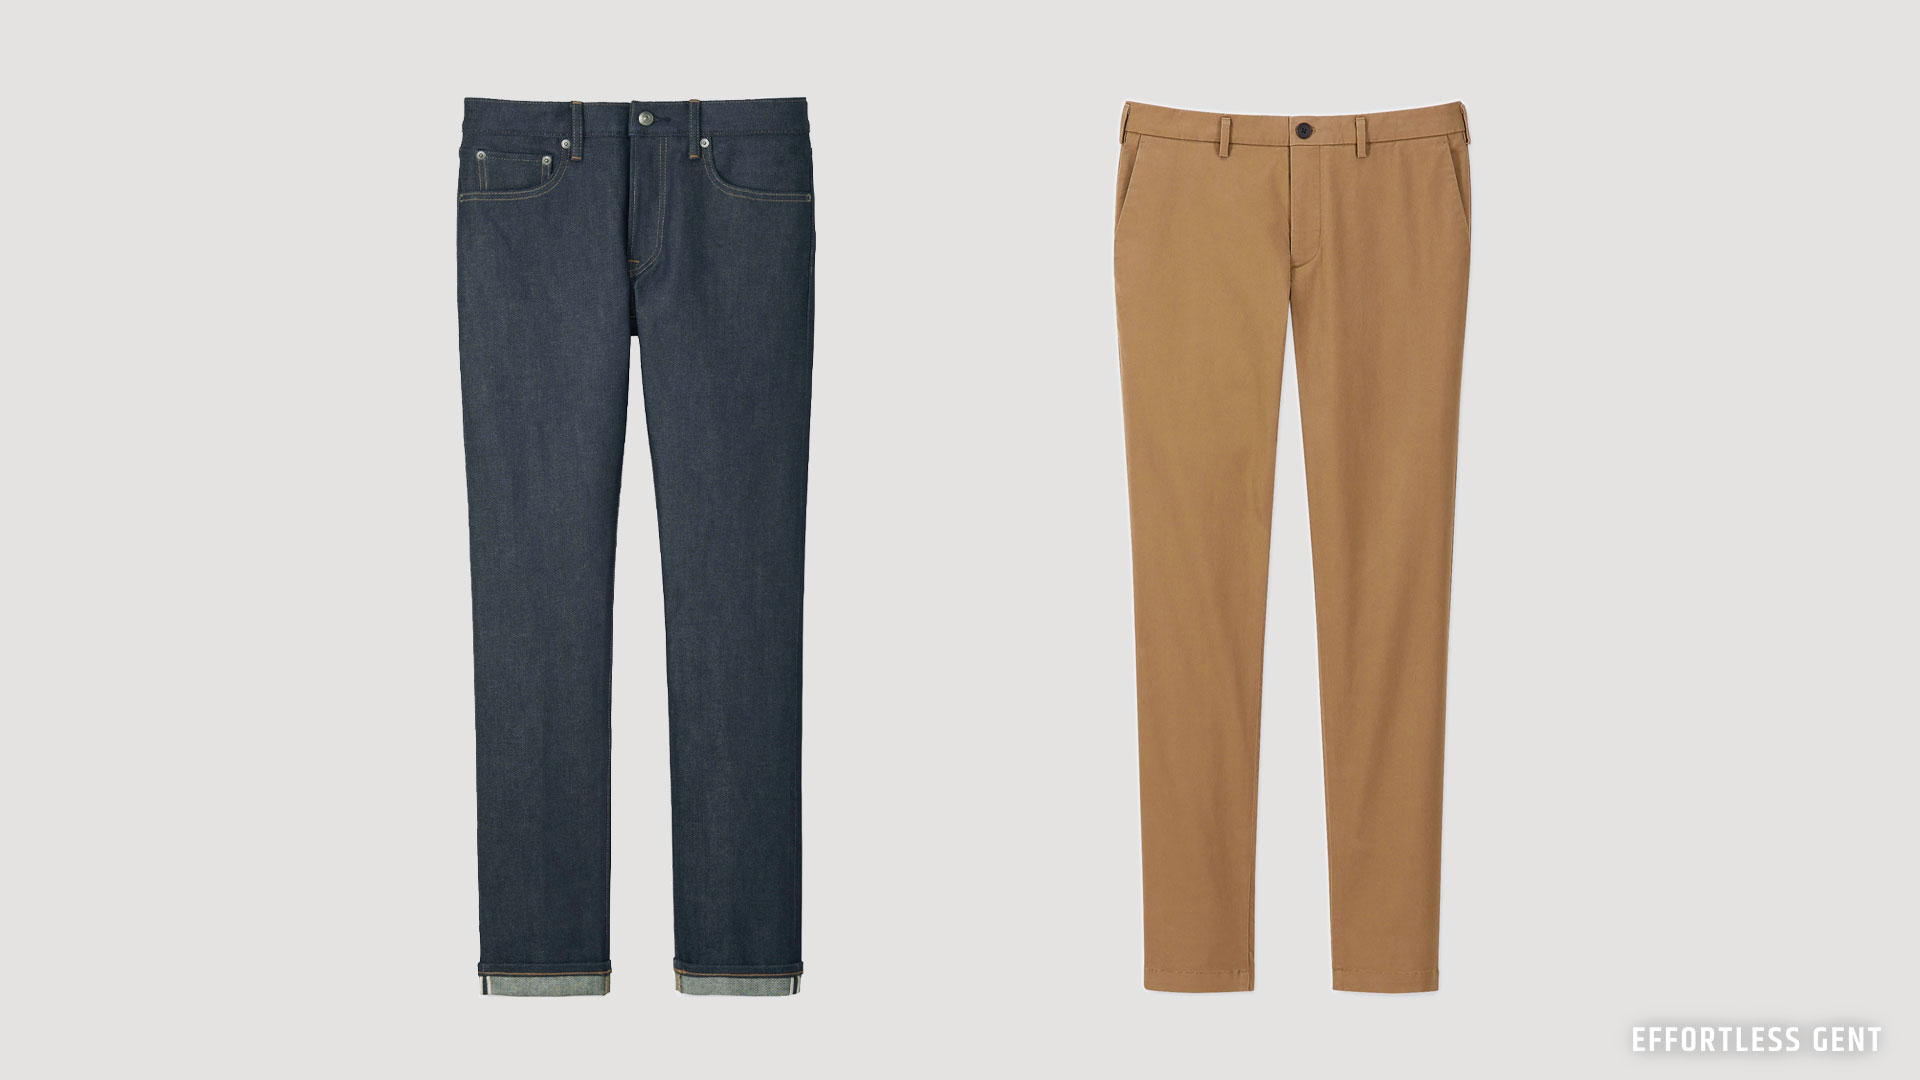 example of denim and chinos that are perfect for a man's minimal lean wardrobe